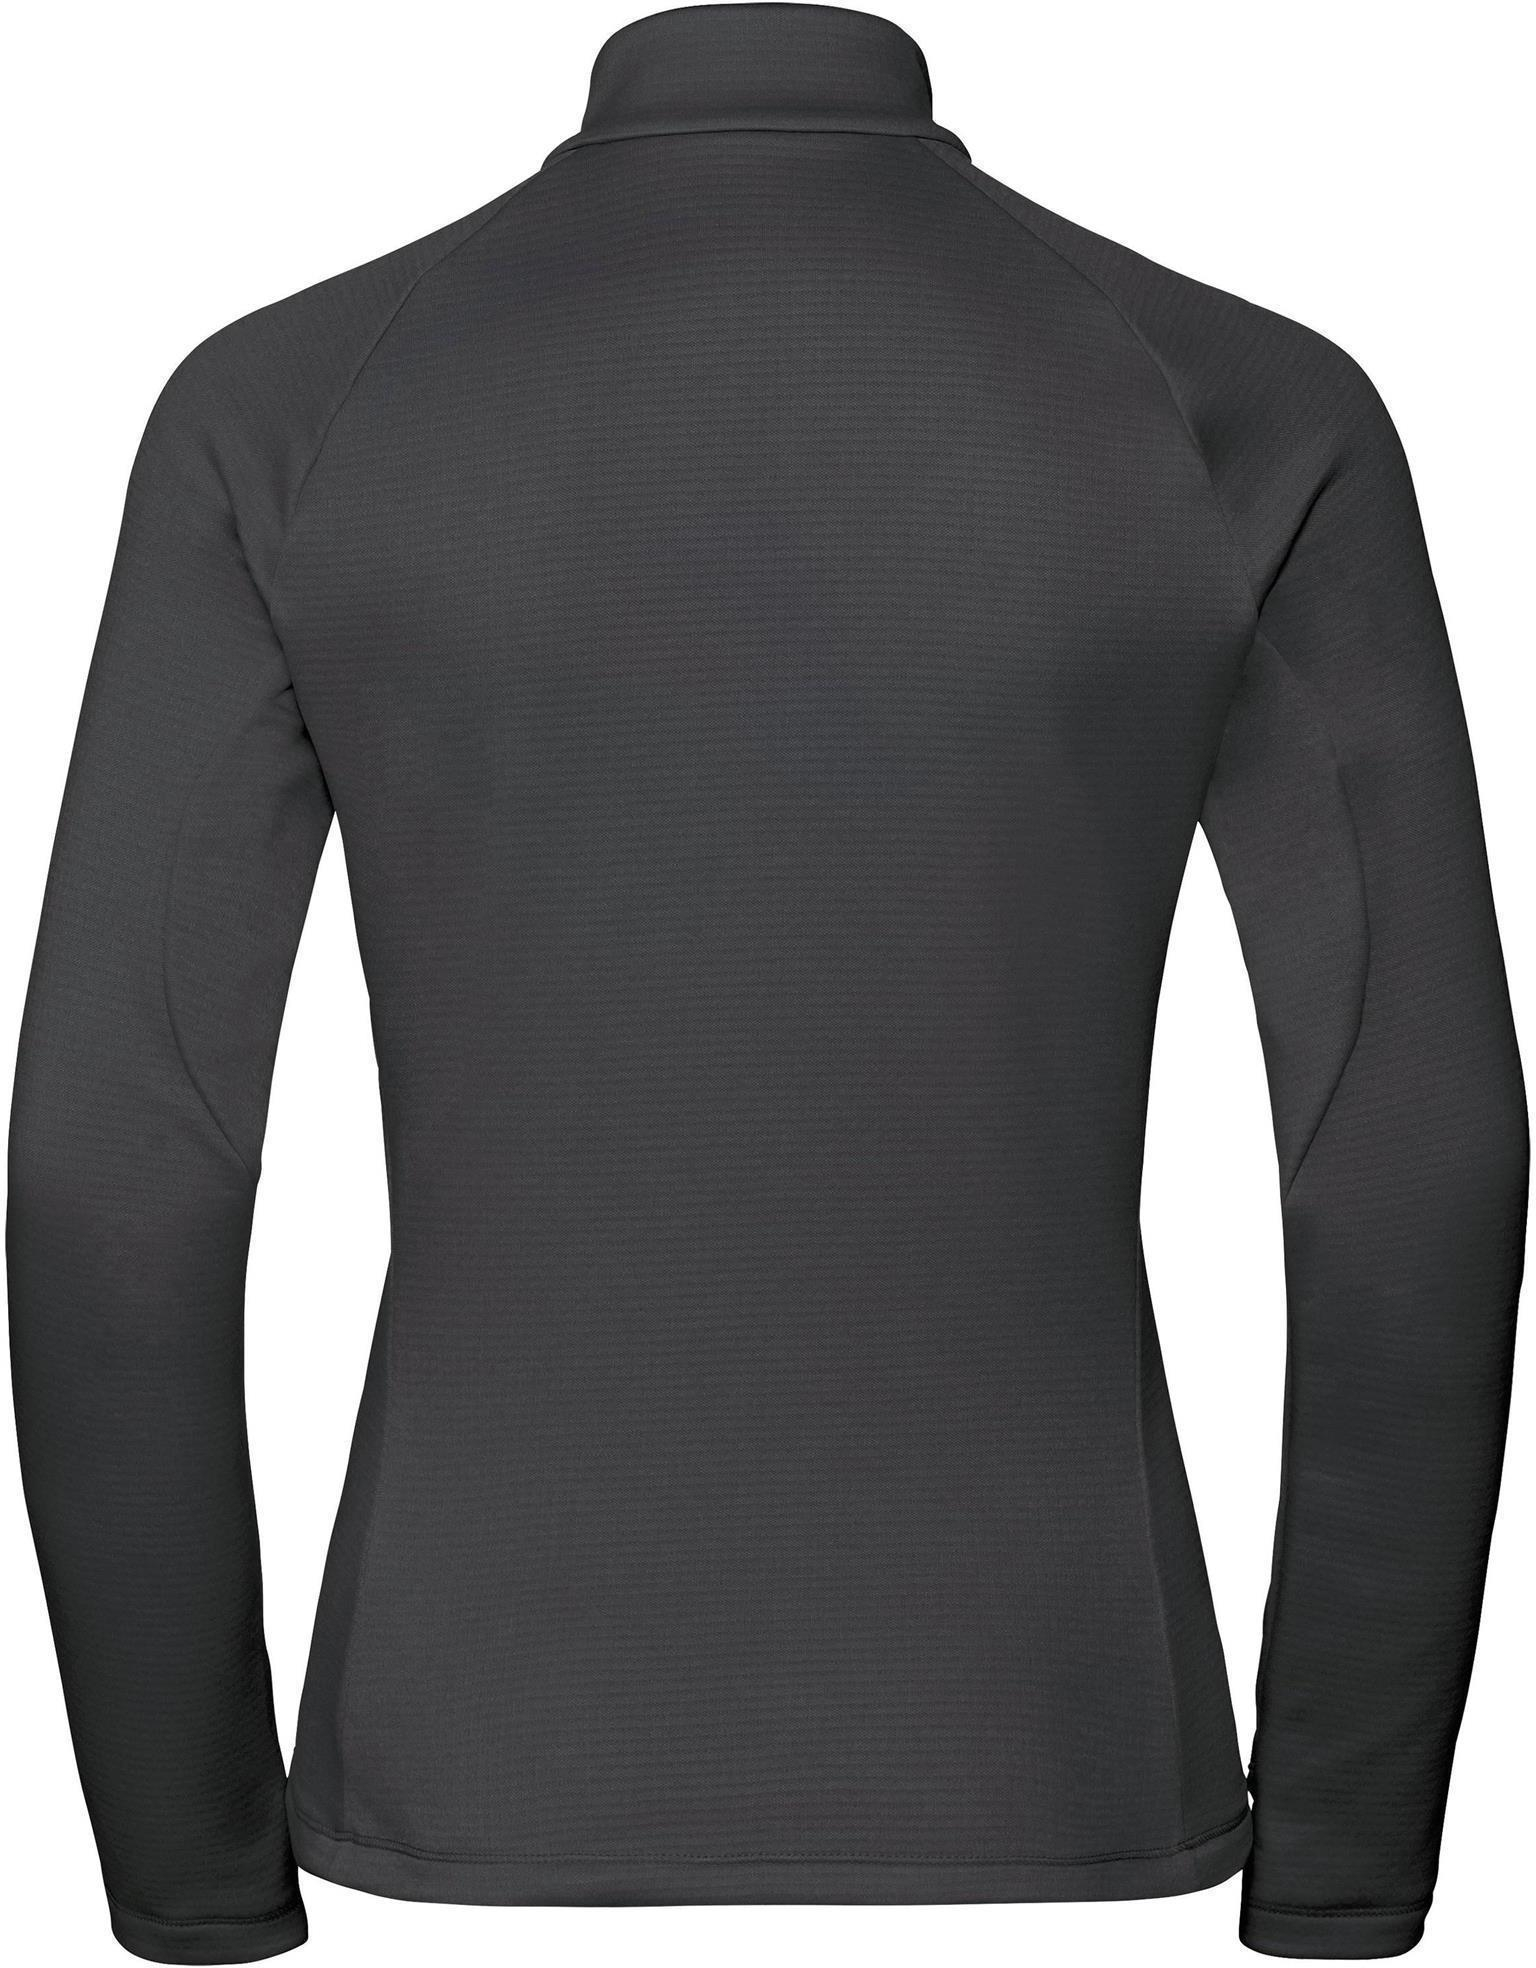 Odlo Hr. Proita Midlayer Powerstretch Jacke 593092 anthrazit